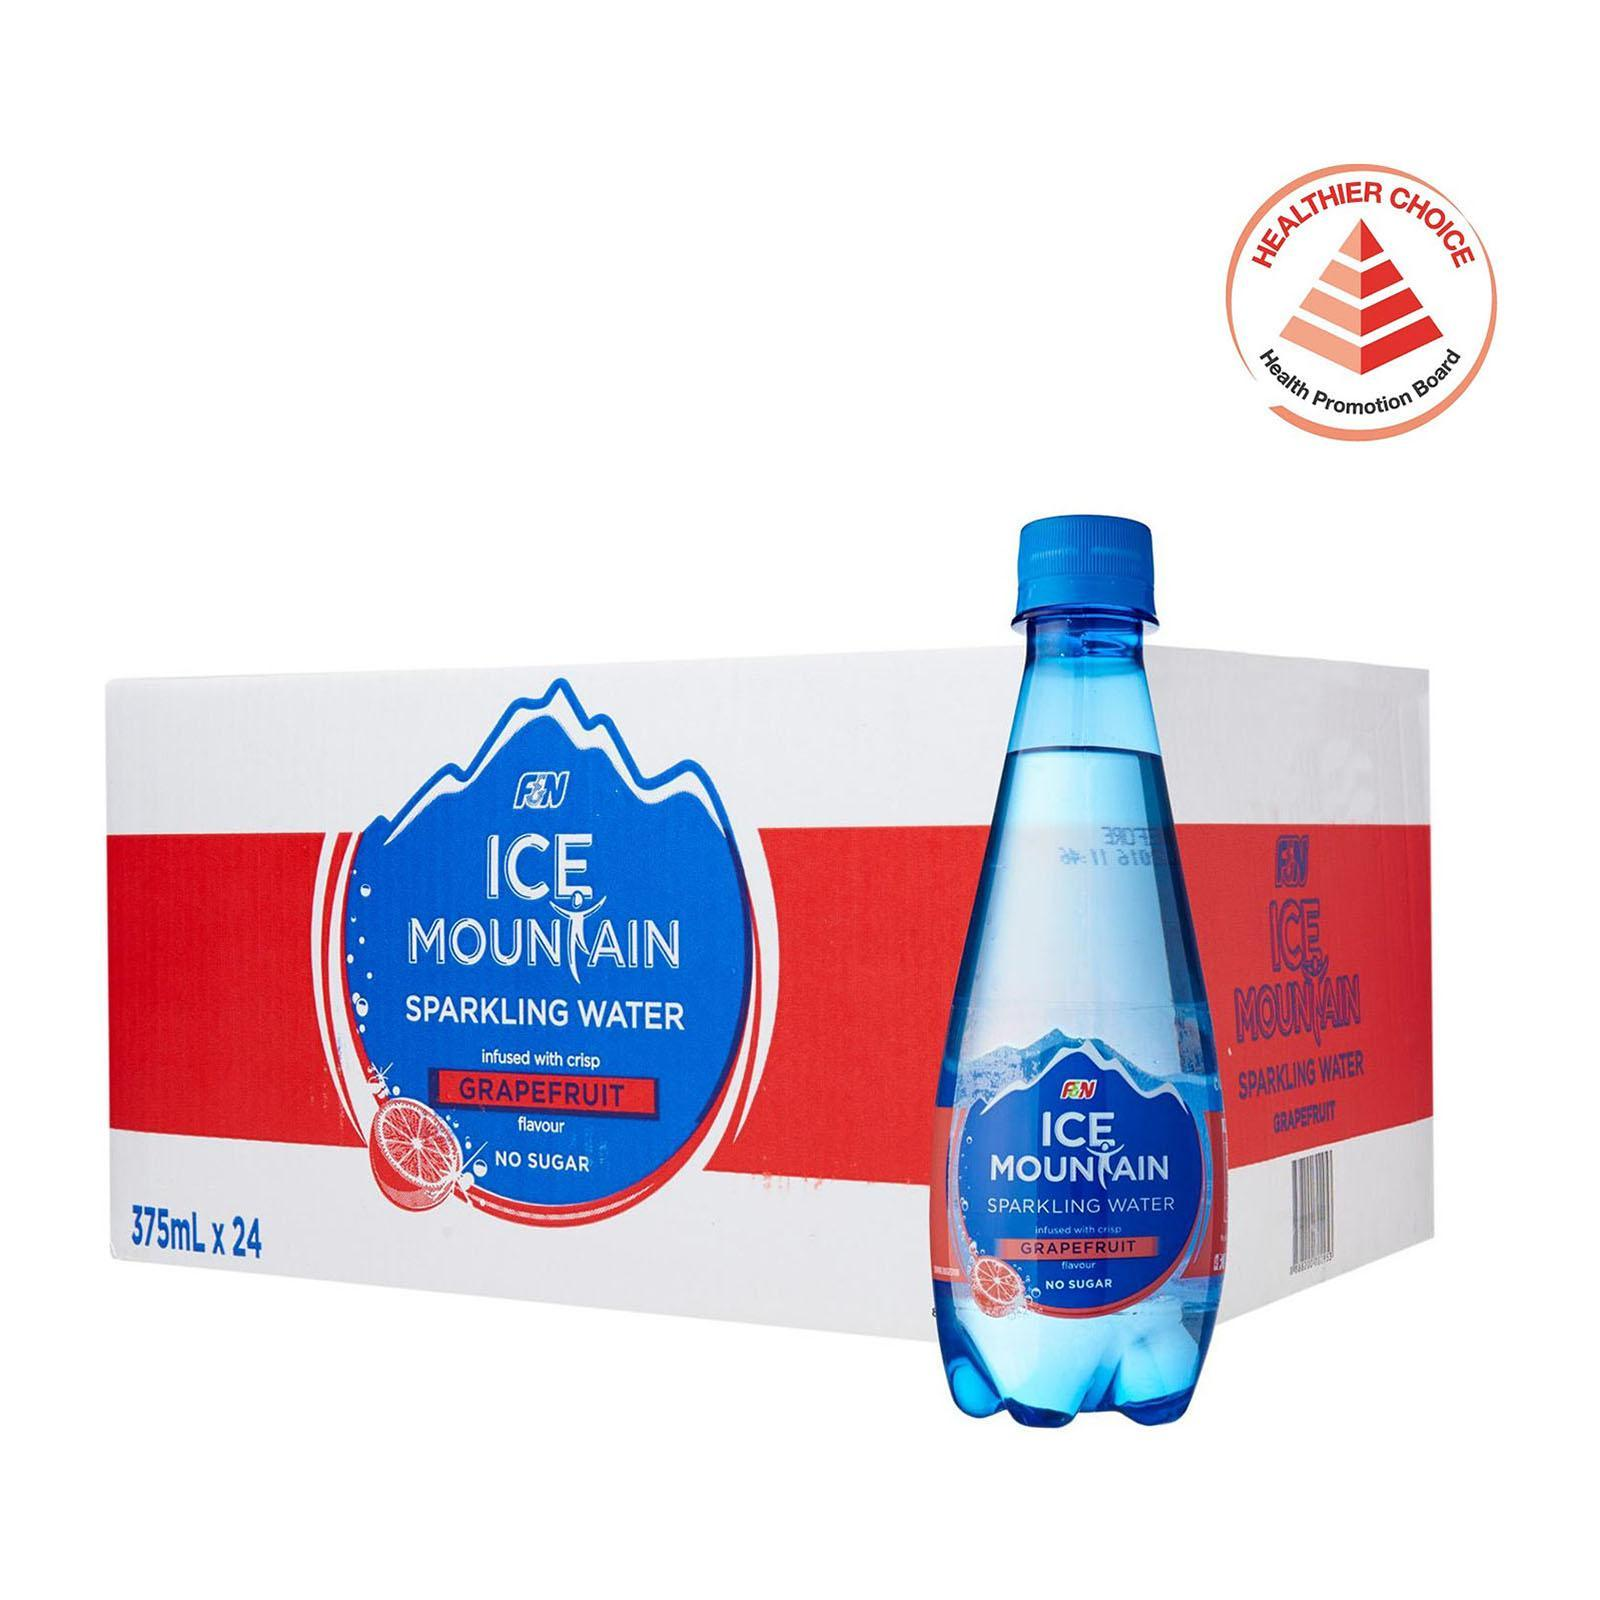 F&N Ice Mountain Sparkling Grapefruit - Case